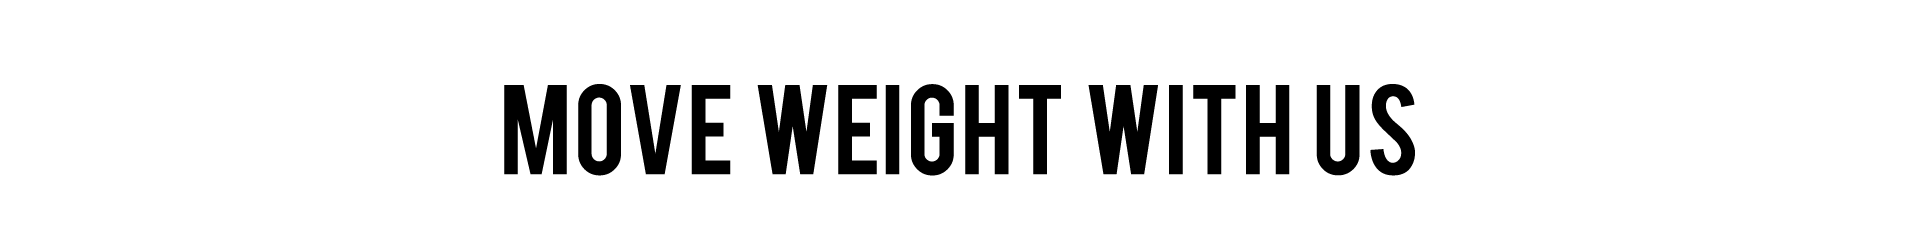 move-weight-with-us-2